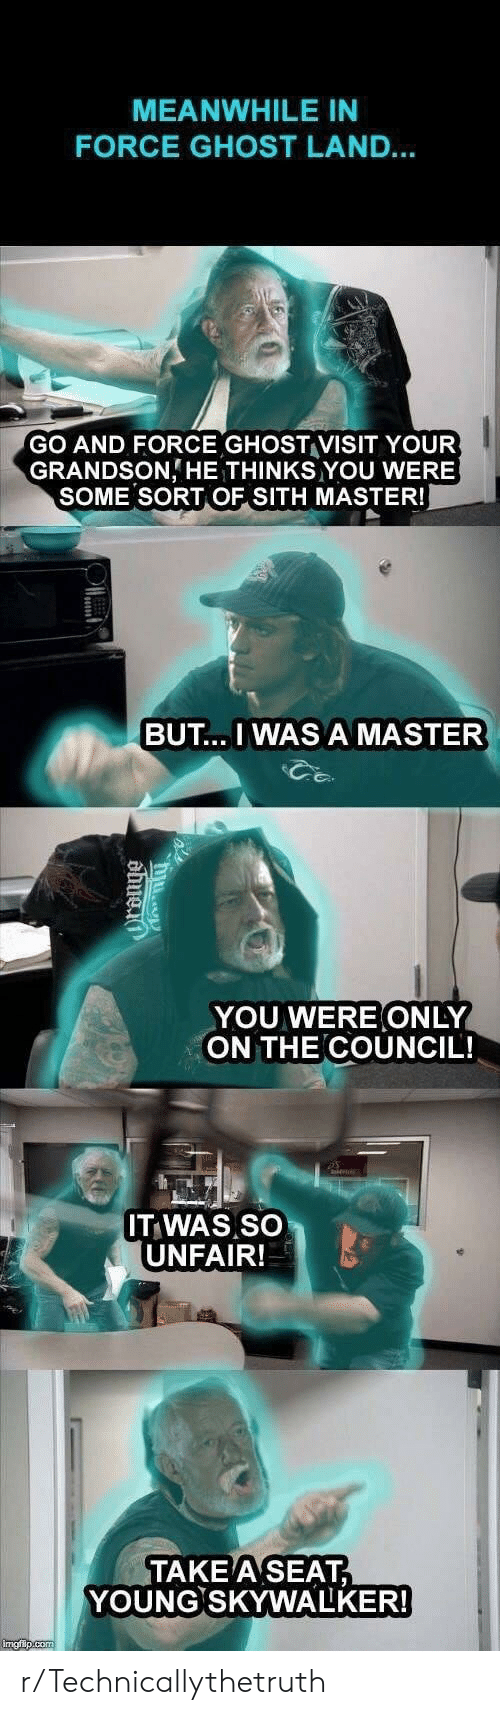 Take A Seat: MEANWHILE IN  FORCE GHOST LAND...  GO AND FORCE GHOST VISIT YOUR  GRANDSON HE THINKS YOU WERE  SOME SORT OF SITH MASTER!  BUT.. I WAS A MASTER  YOU WERE ONLY  ON THE COUNCIL!  IT WAS SO  UNFAIR!  TAKE A SEAT  YOUNG SKYWALKER!  imgip.co r/Technicallythetruth